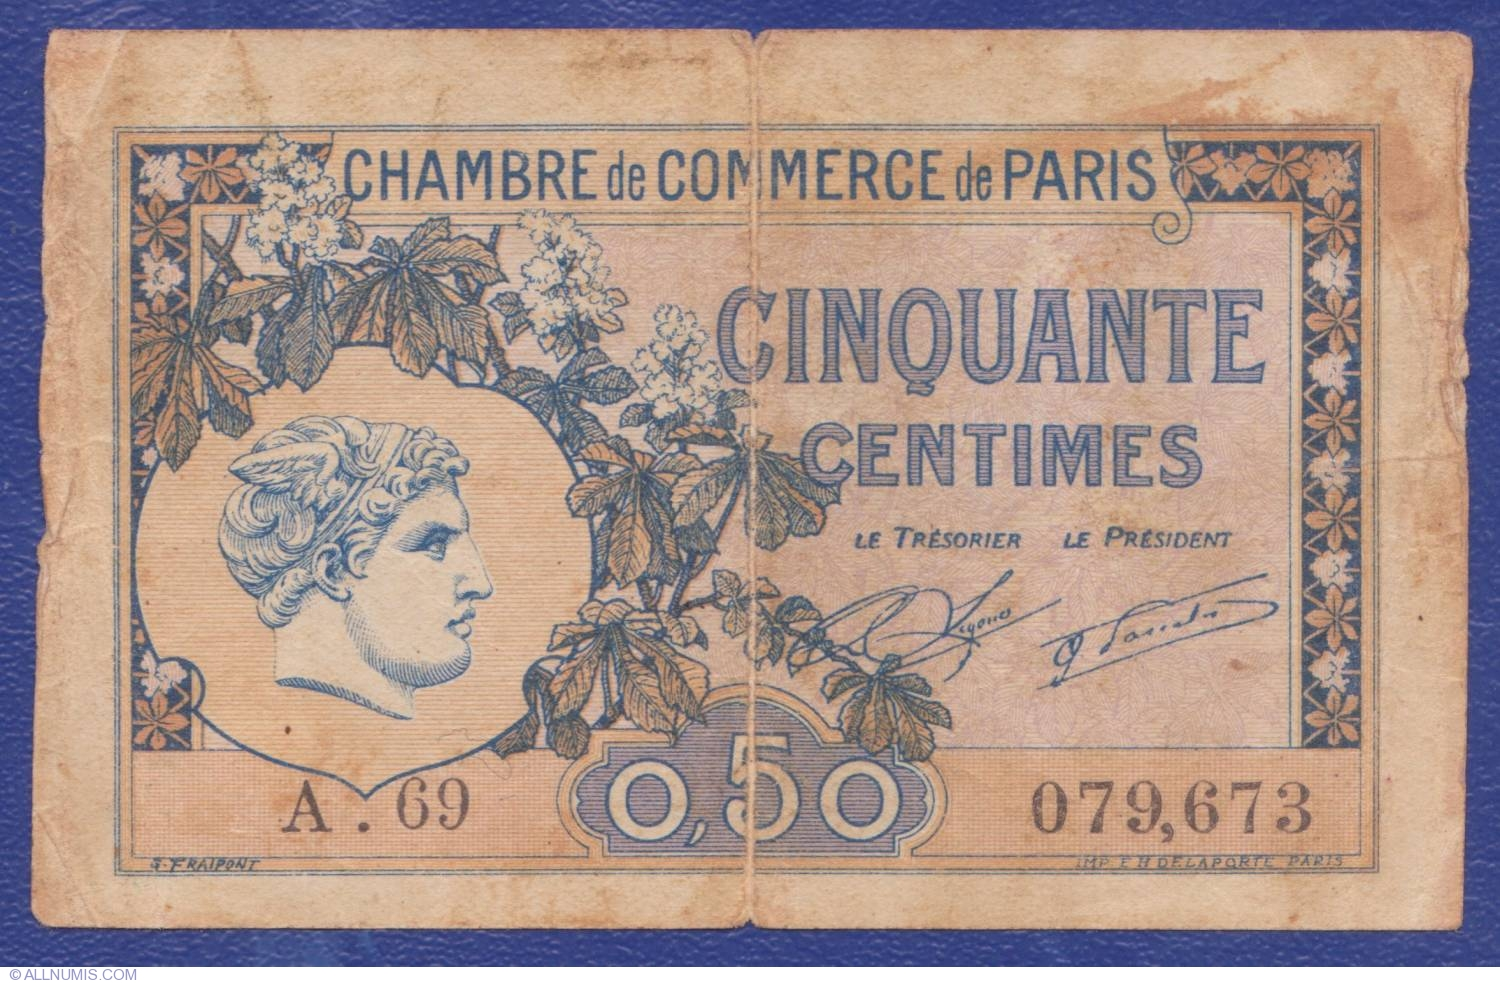 50 centimes 1920 paris chambre de commerce france for Chambre de commerces